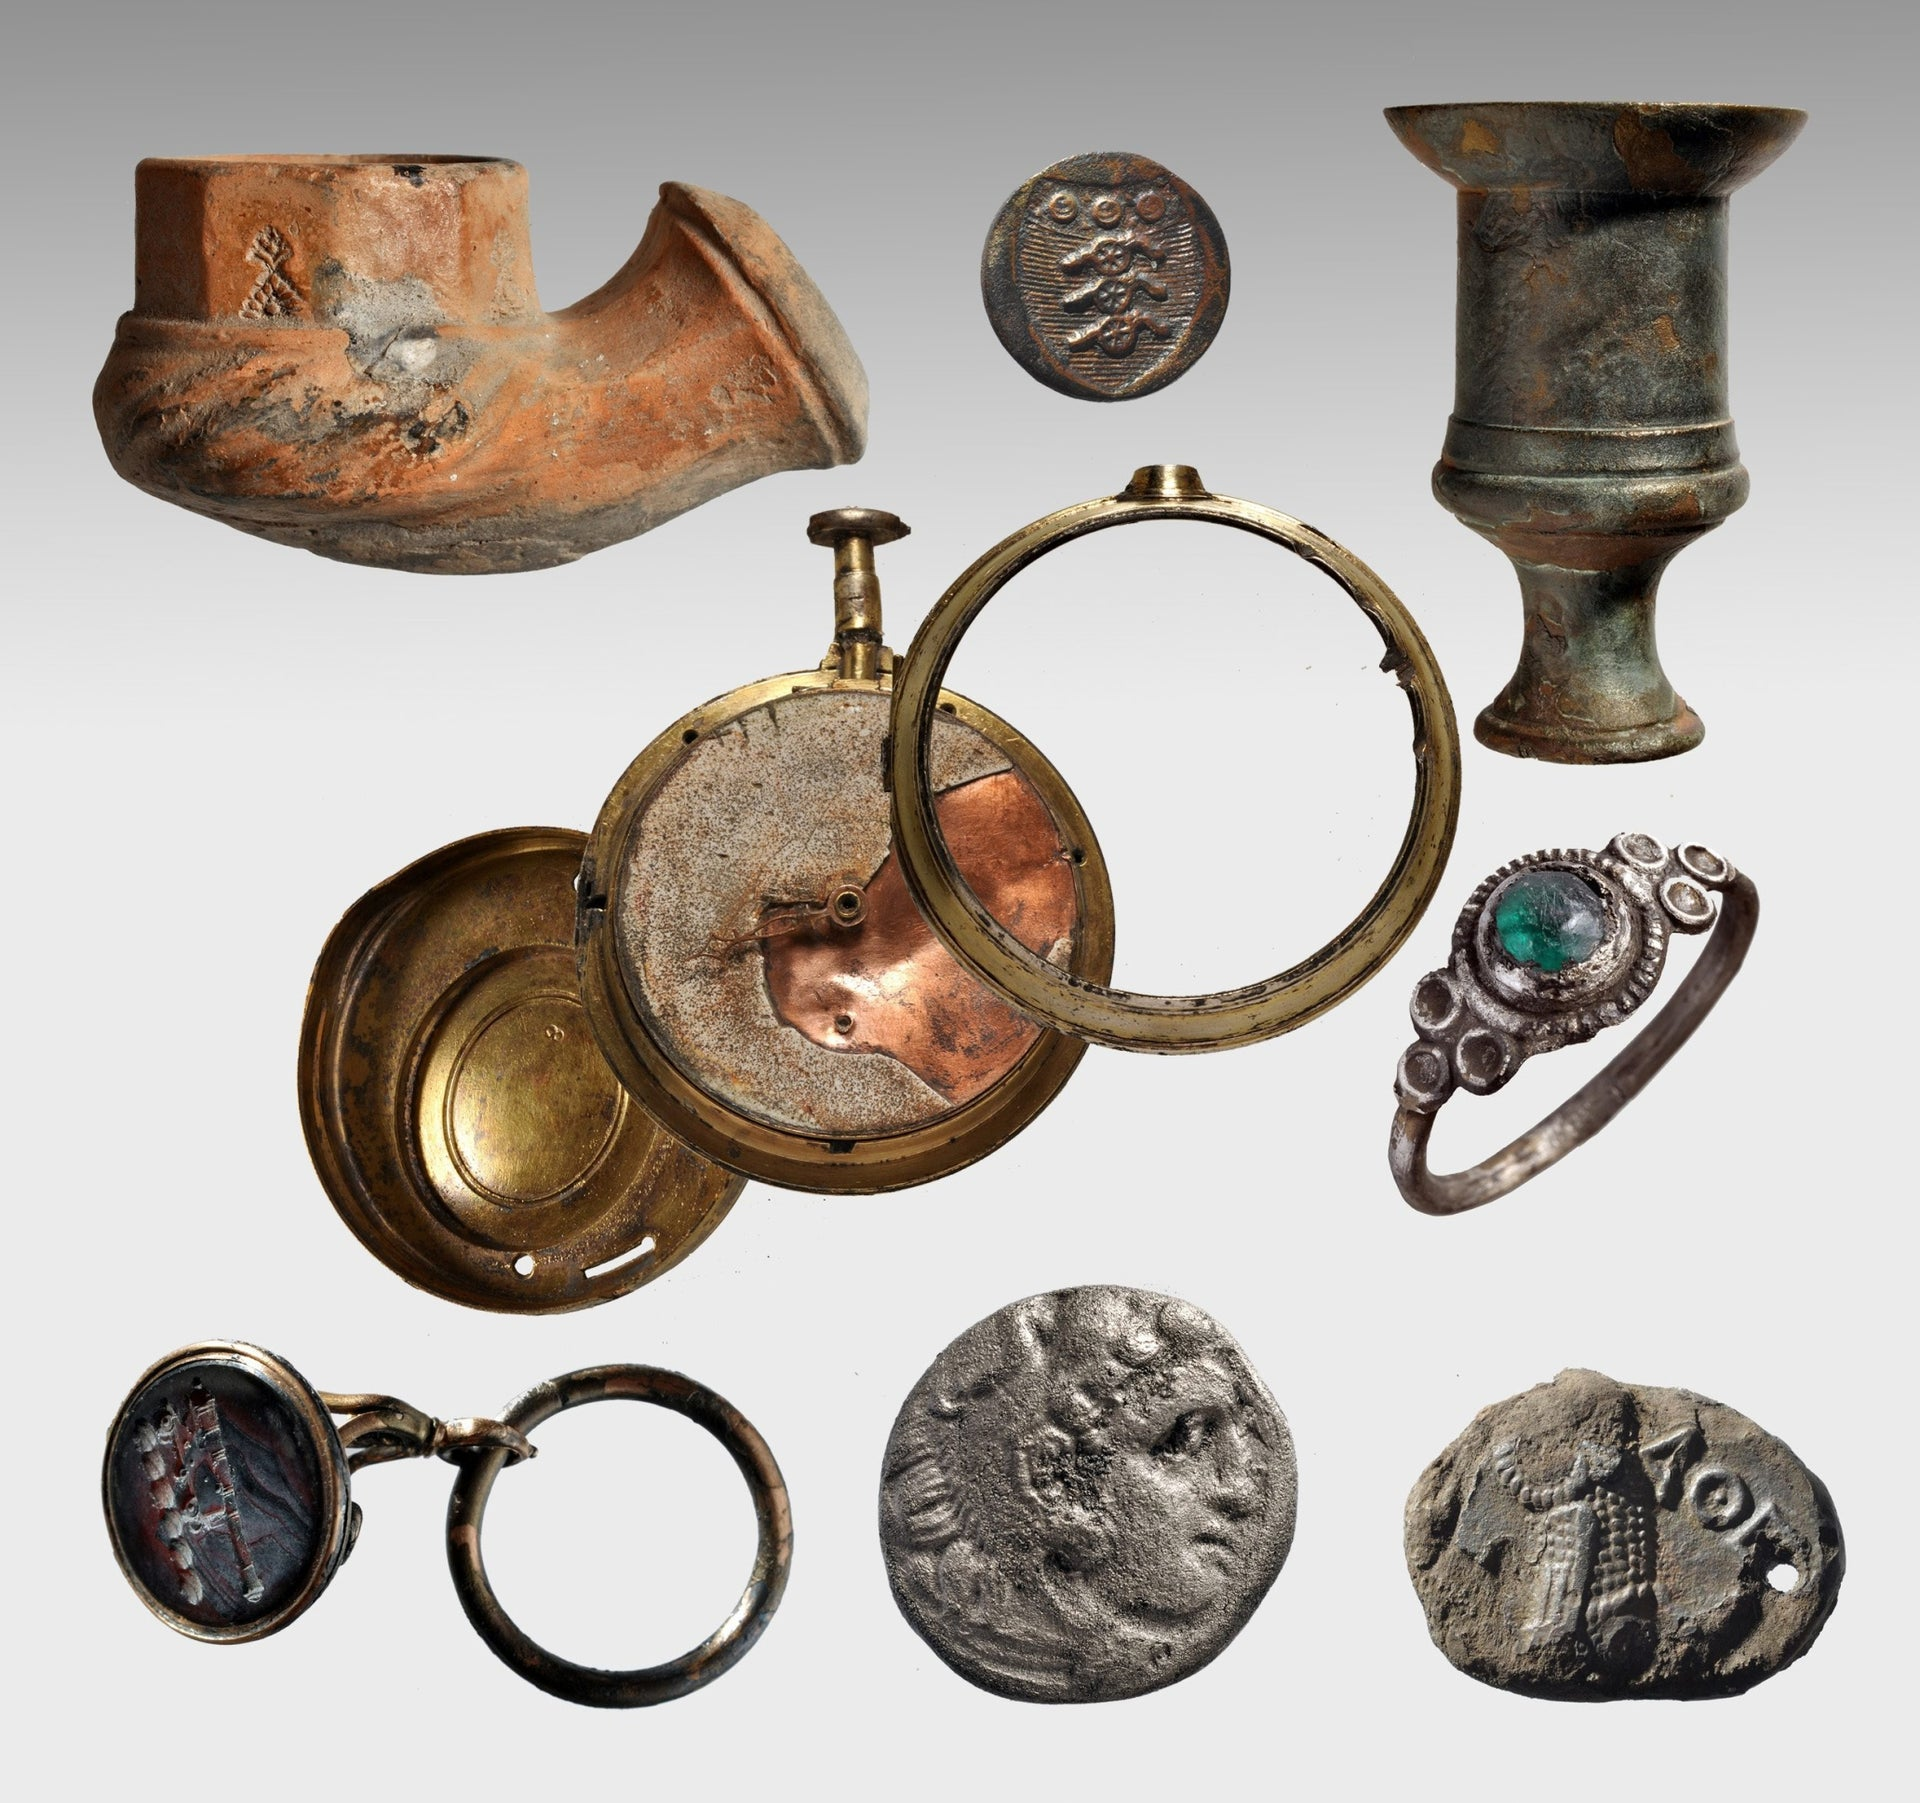 Artifacts found aboard the Mentor,  Lord Elgin's ship that sank off Kythera while carrying Parthenon marbles from Piraeus to London in 1802.